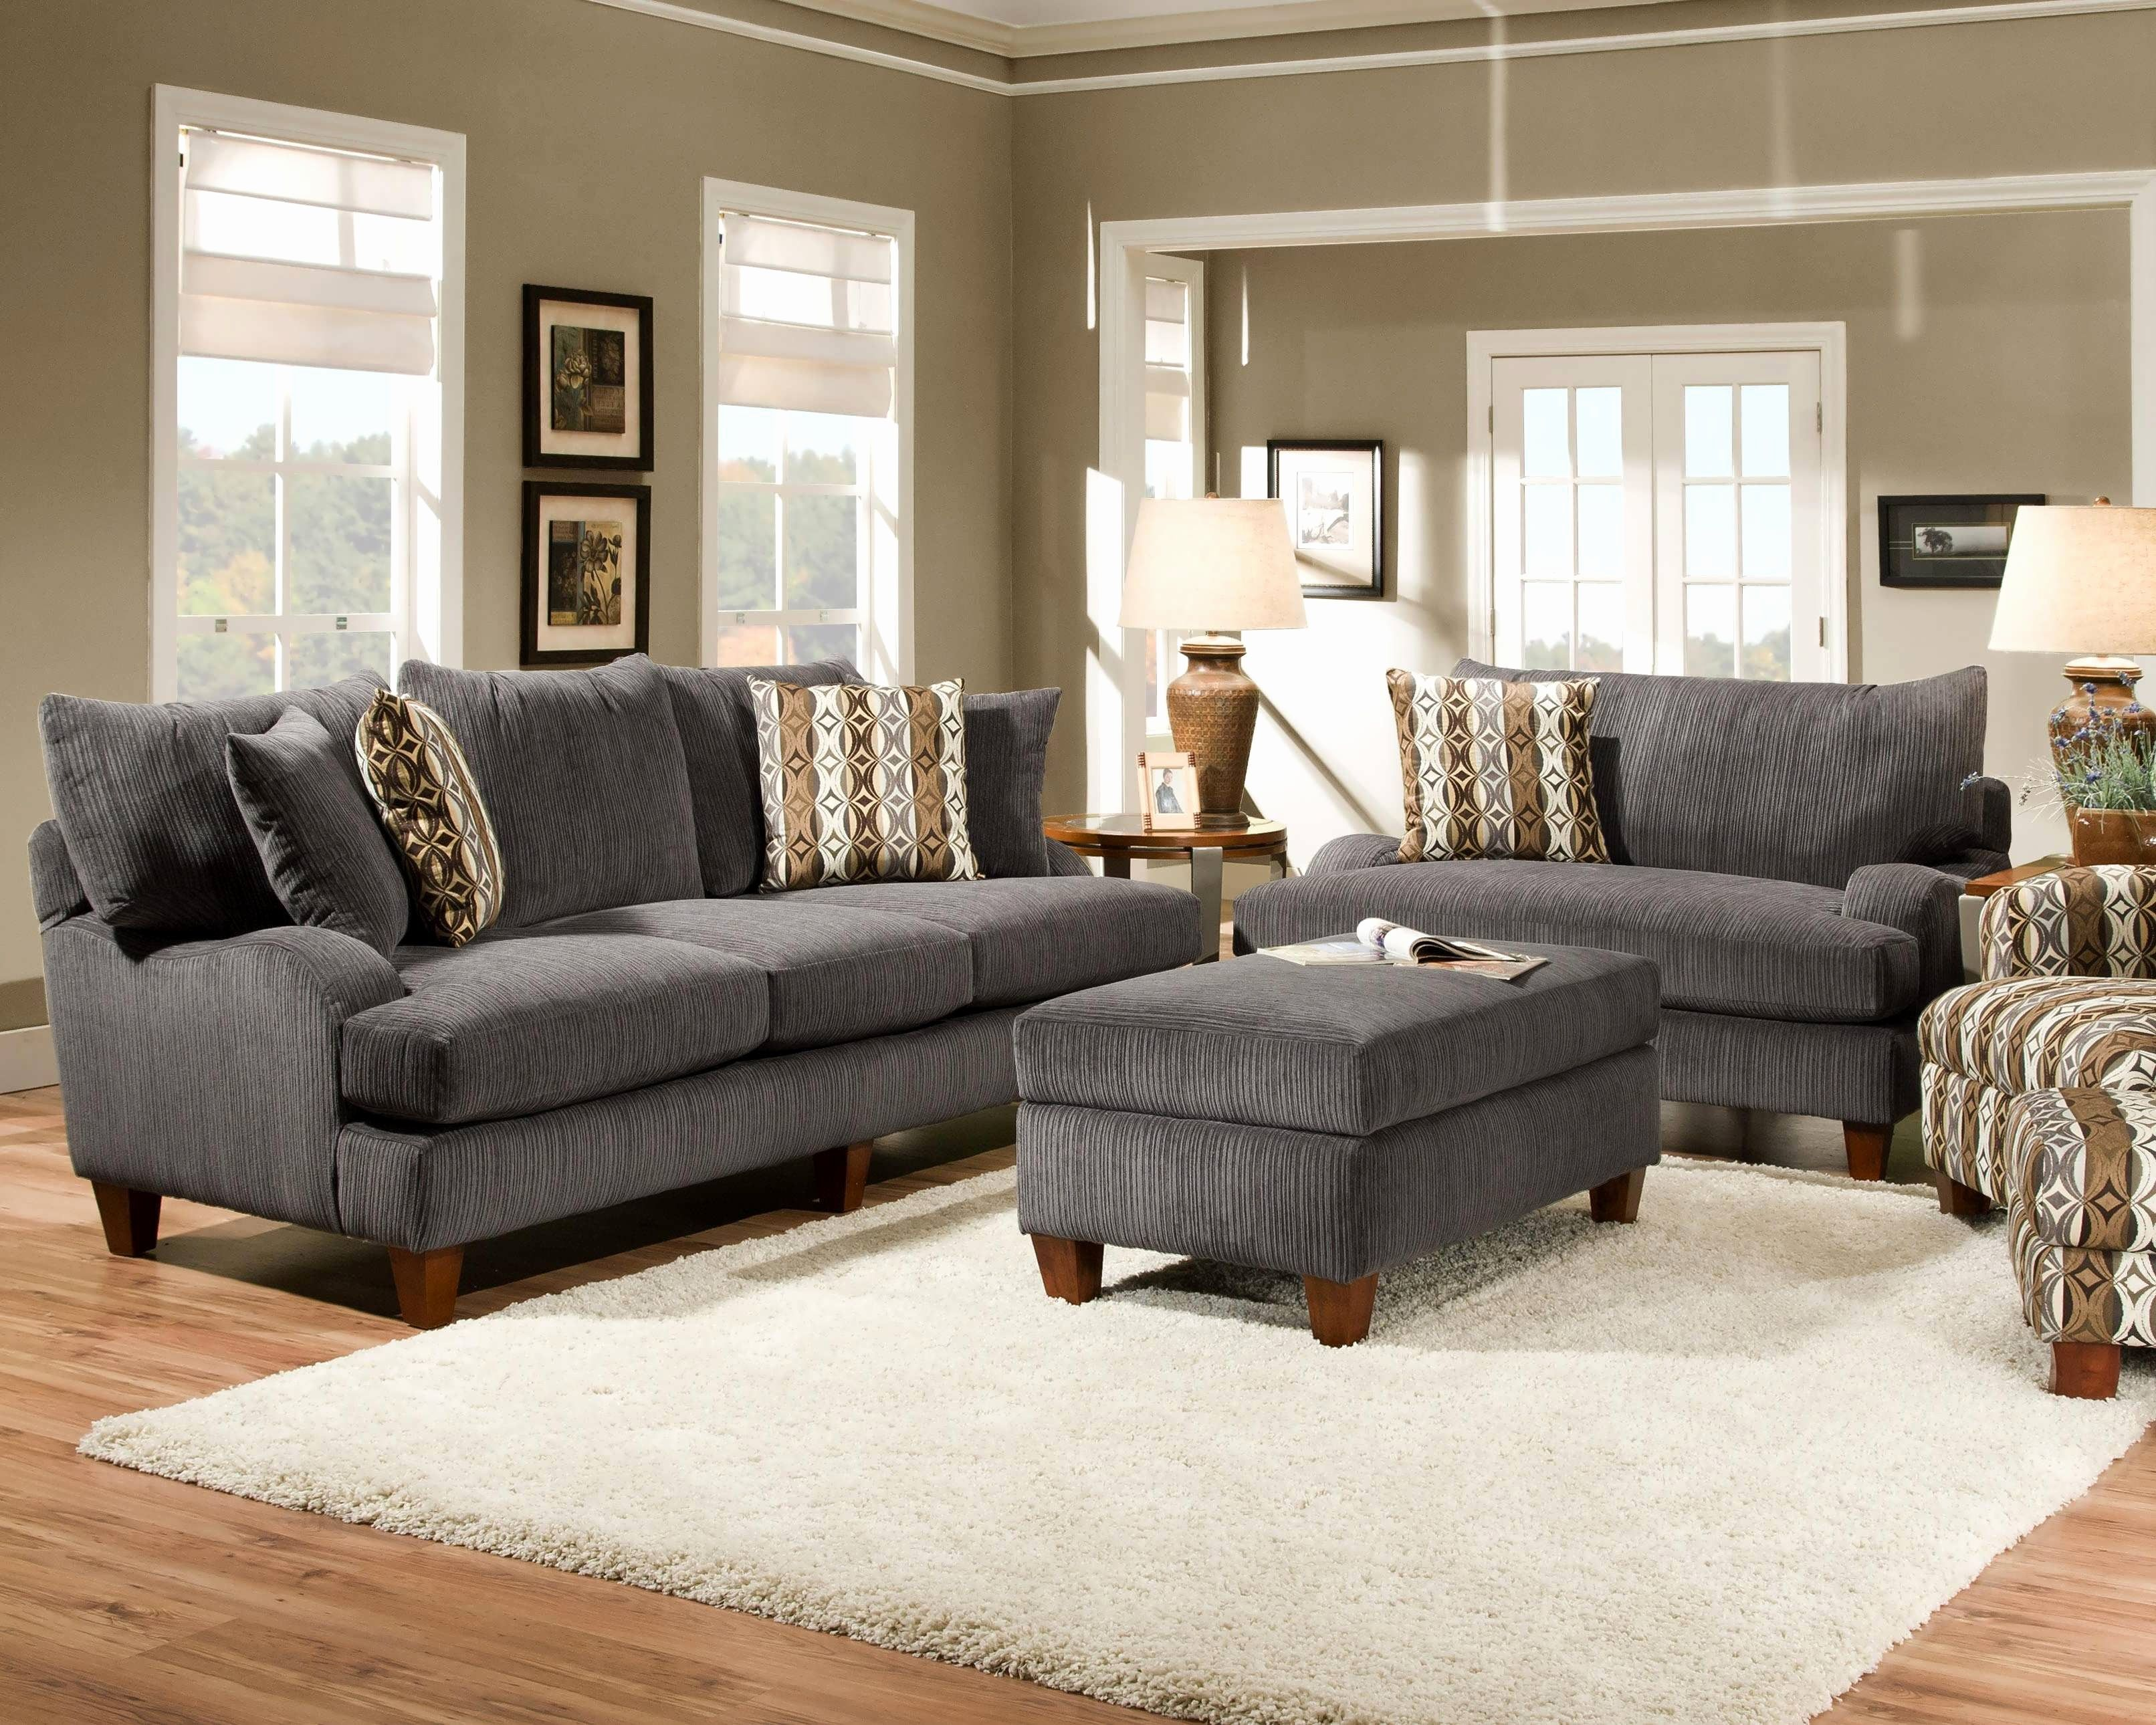 Dark Grey Couch Living Room Ideas Good Sofas Set Photograpy Sofas Amazing Gray Reclining